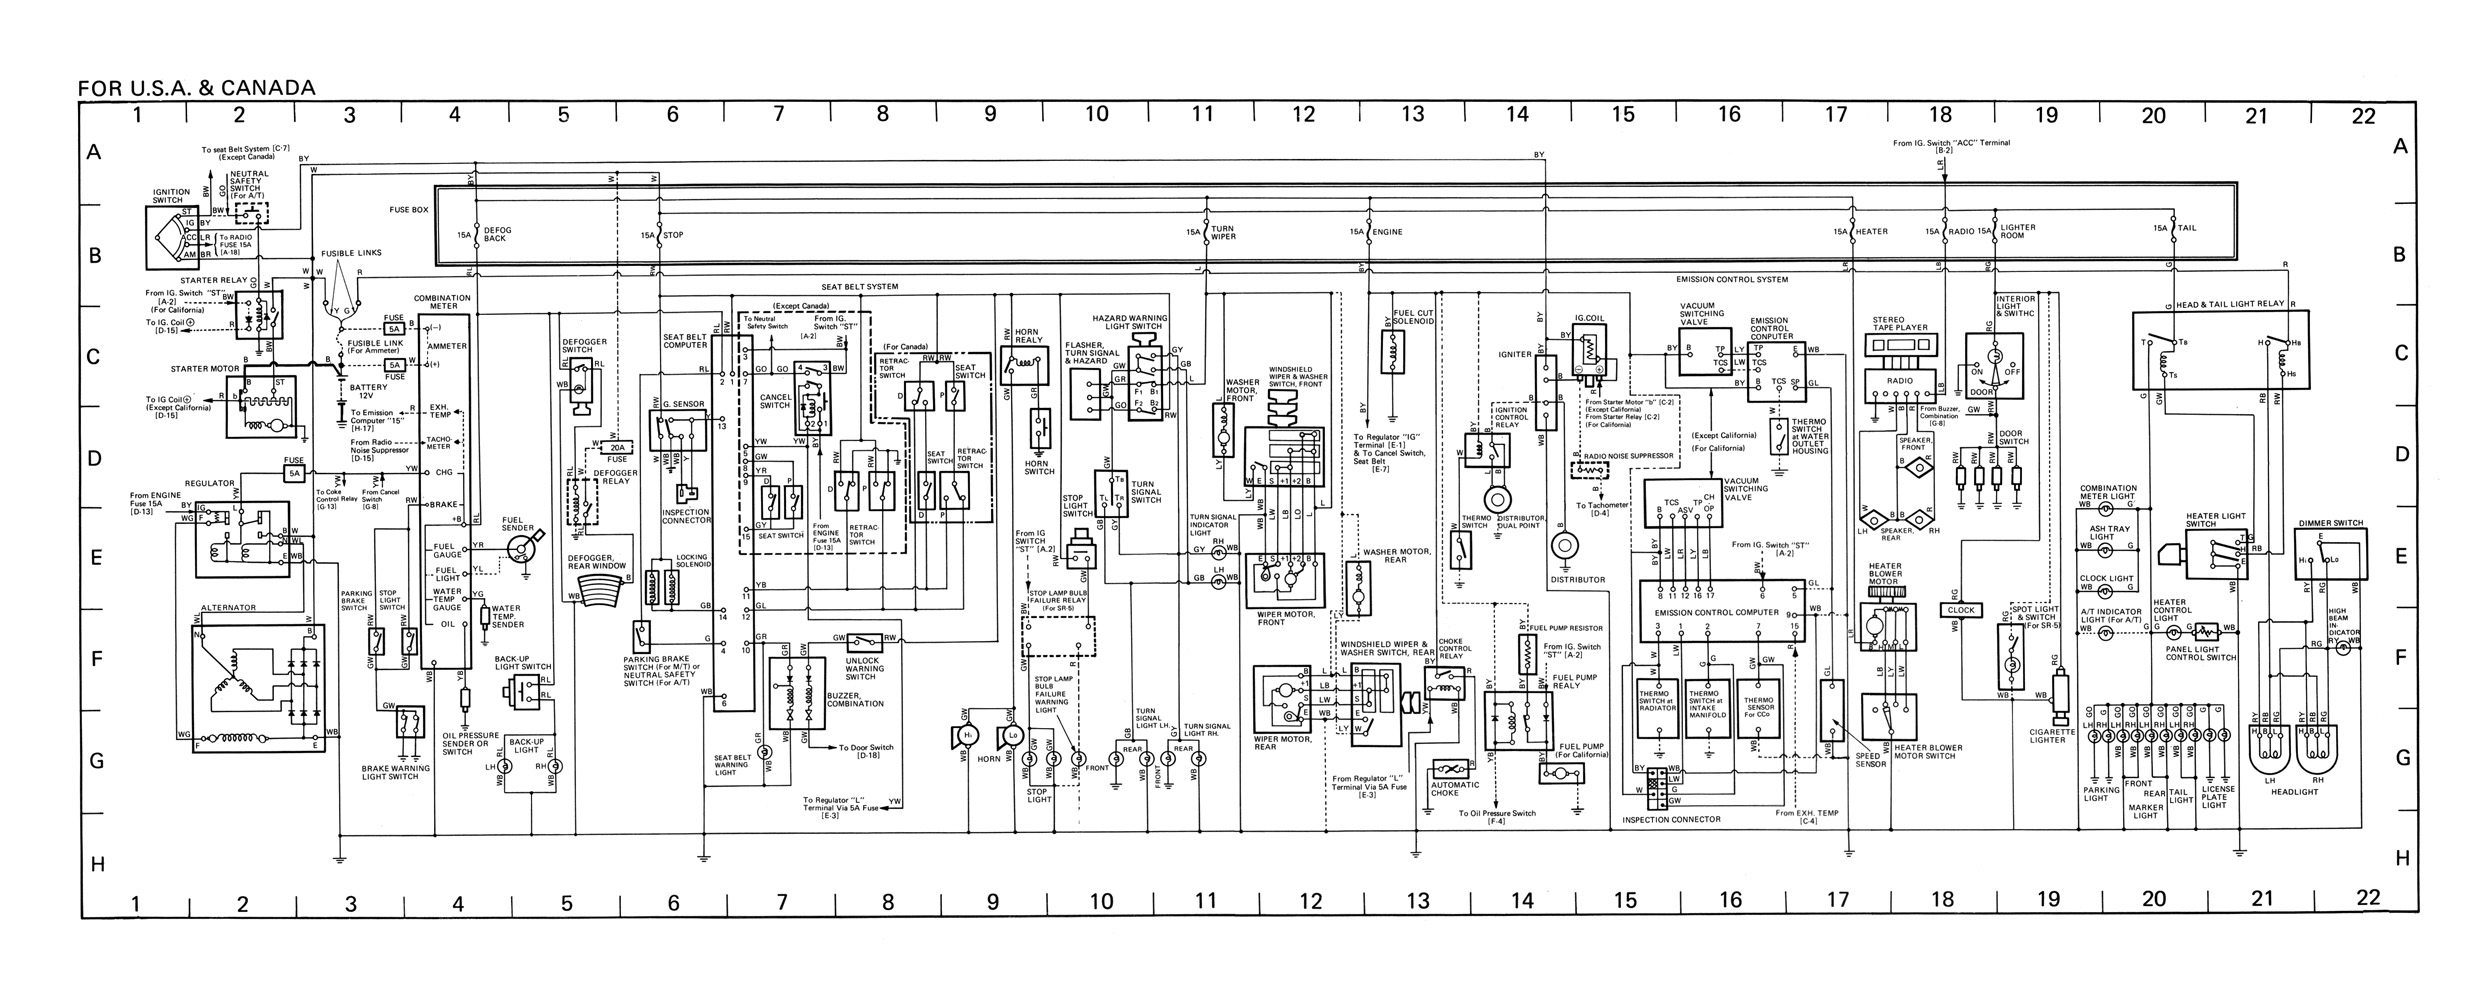 1974 Toyota Corolla Wiring Diagram Electrical Diagrams Corona 1972 Online Manual Sharing Service Body Page 04 06 100dpi 2013